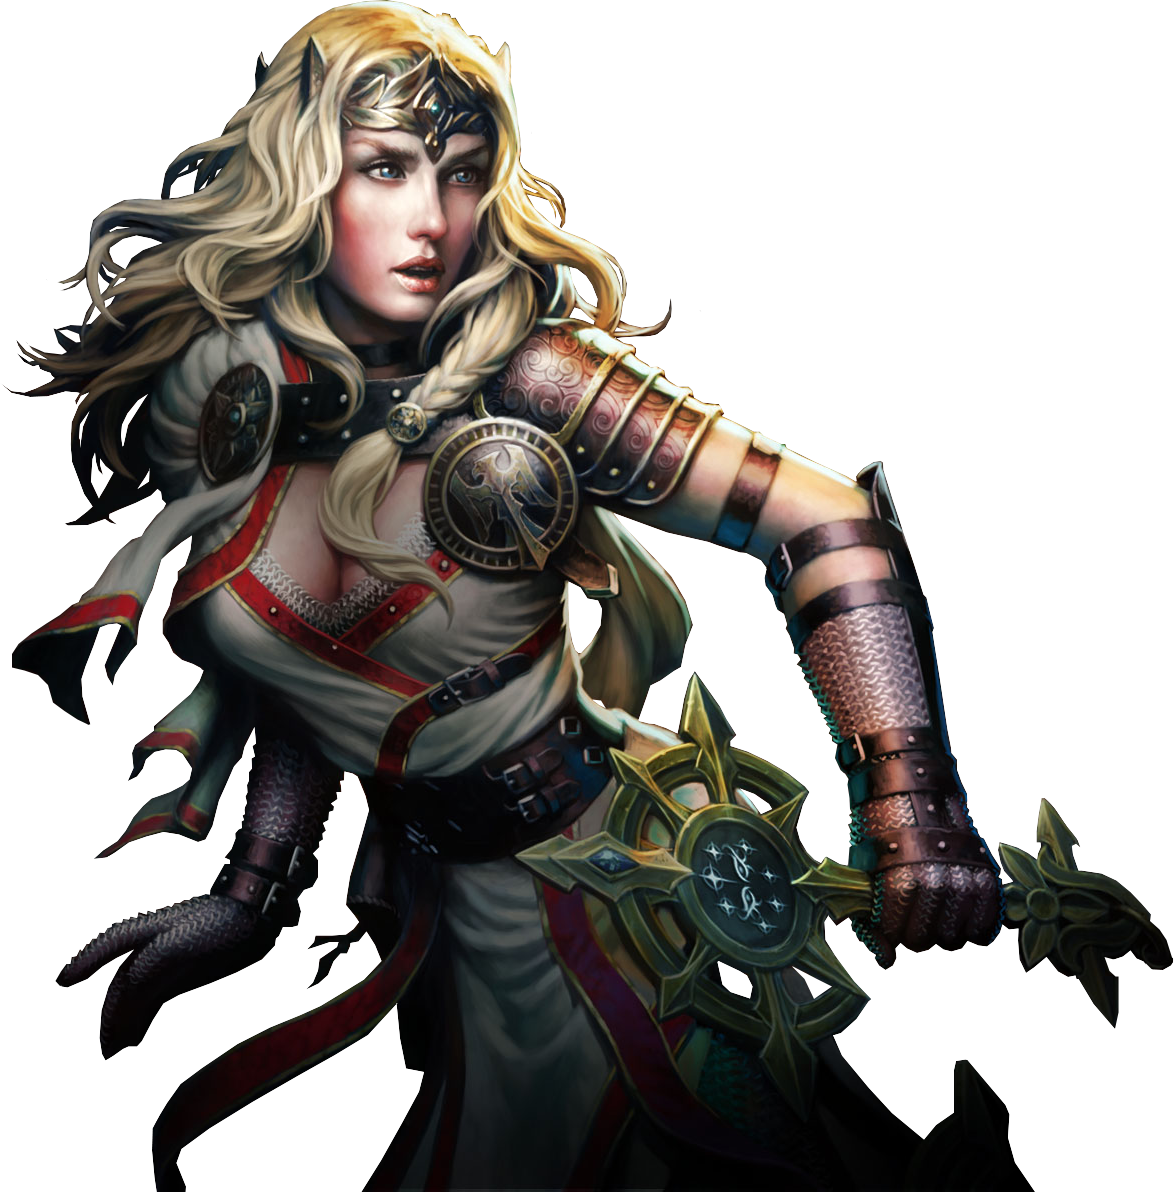 Neverwinter cleric render by Sevowen